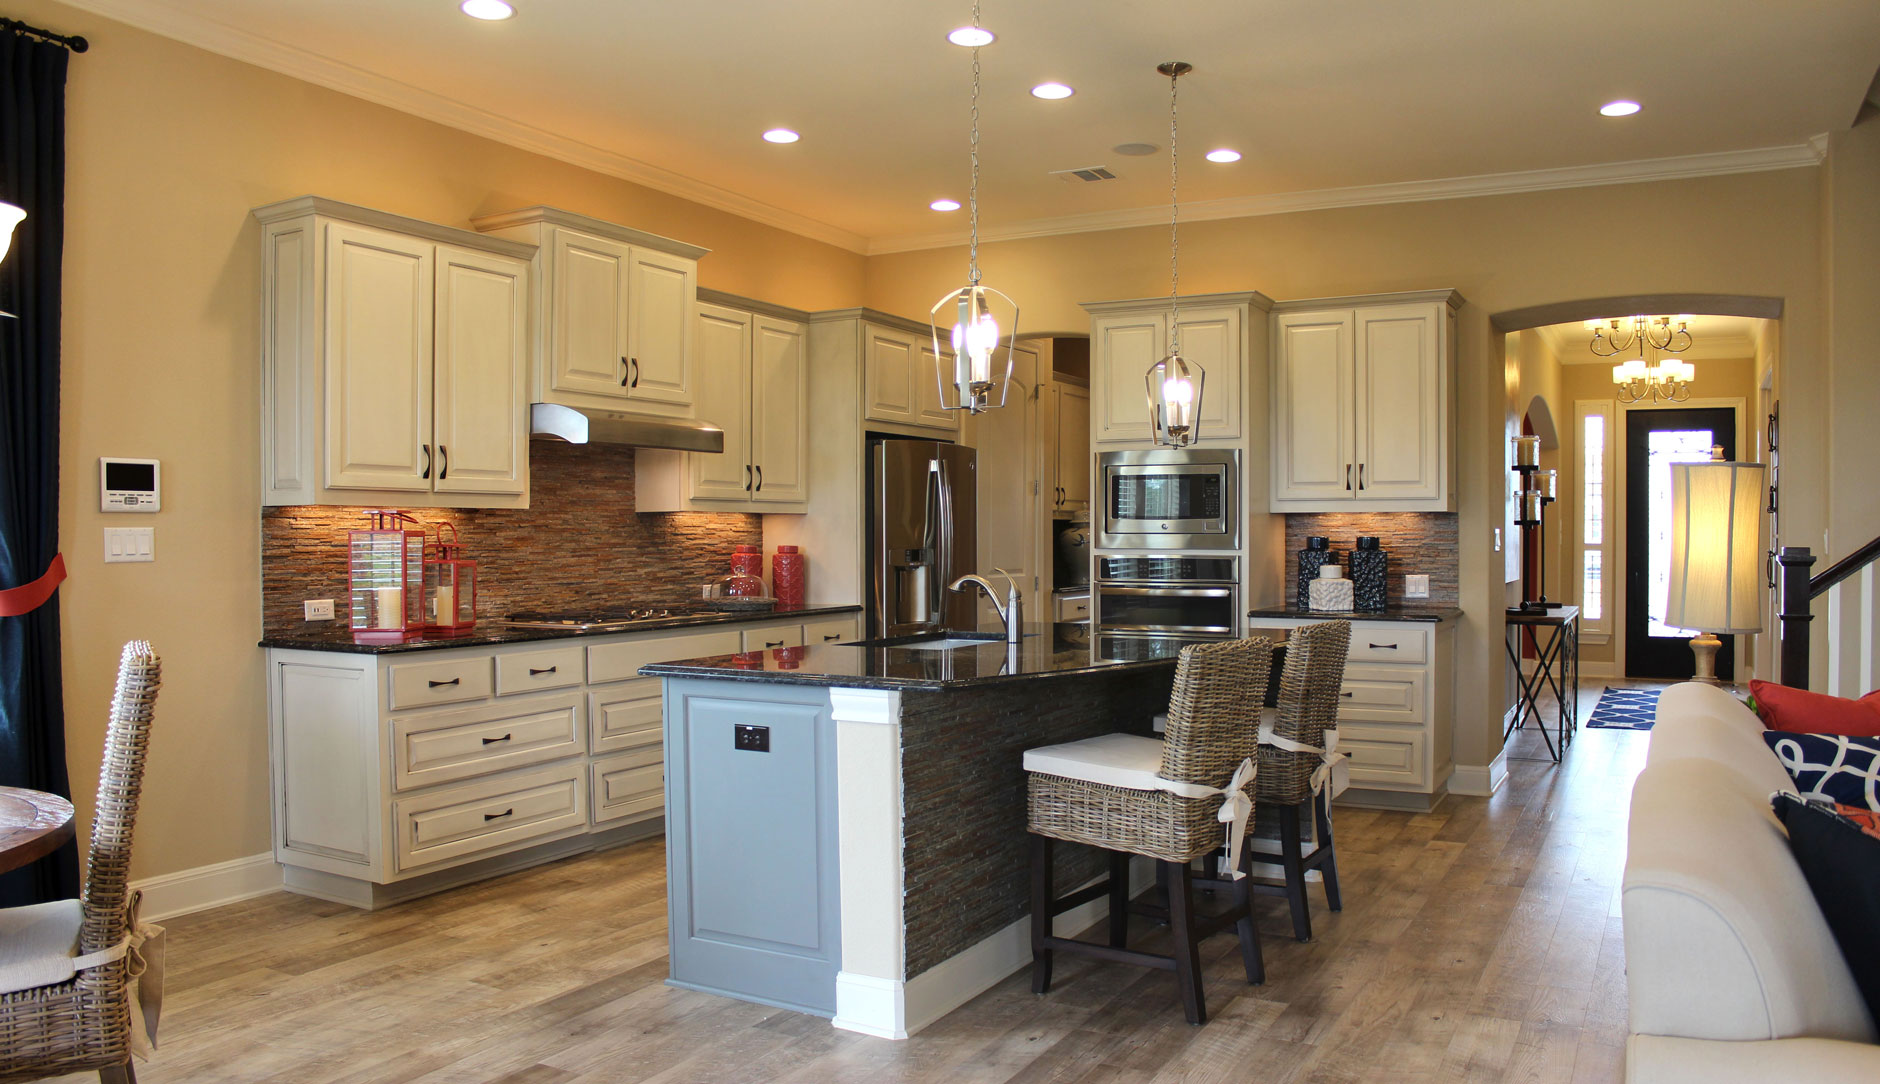 choose flooring compliments cabinet color ash kitchen cabinets Kitchen cabinet 2 by Burrows Cabinets at Travisso with painted cabinets in Bone with black glaze